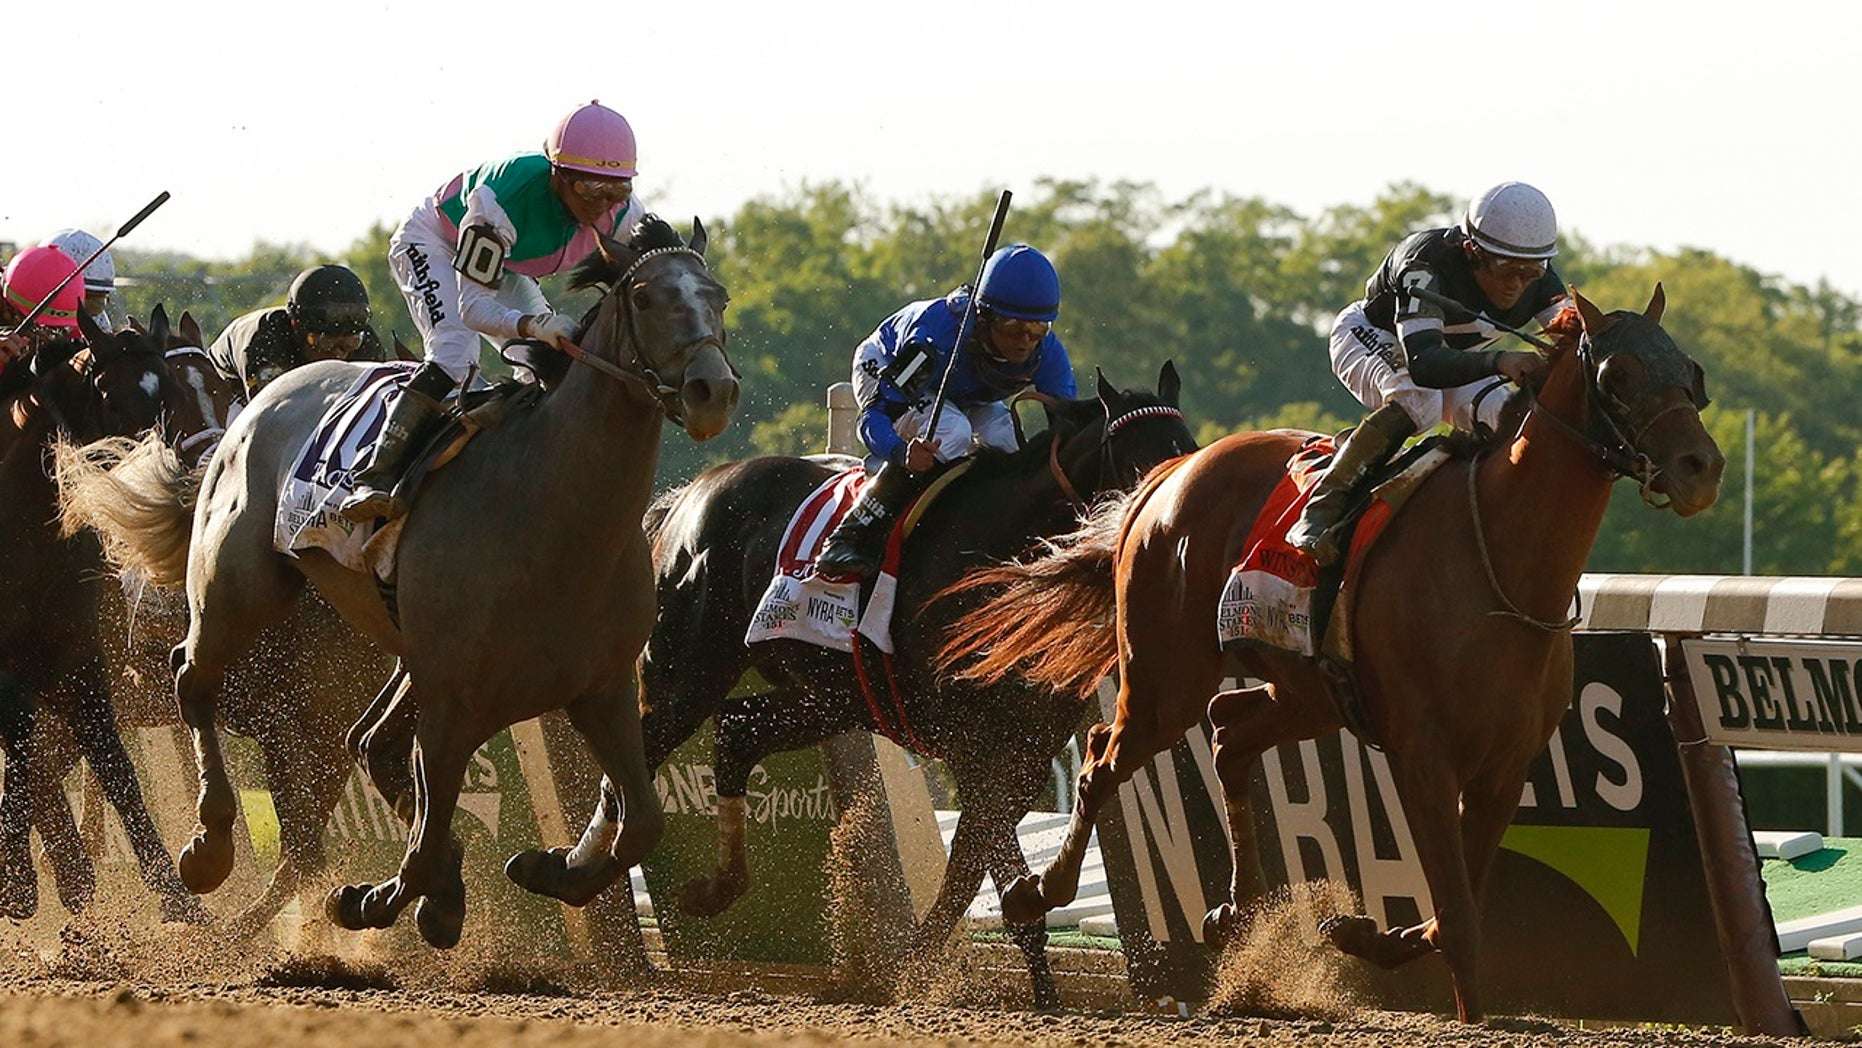 Sir Winston (7), with jockey Joel Rosario up, crosses the finish line to win the 151st running of the Belmont Stakes horse race, Saturday, June 8, 2019, in Elmont, N.Y. (AP Photo/Eduardo Munoz Alvarez)